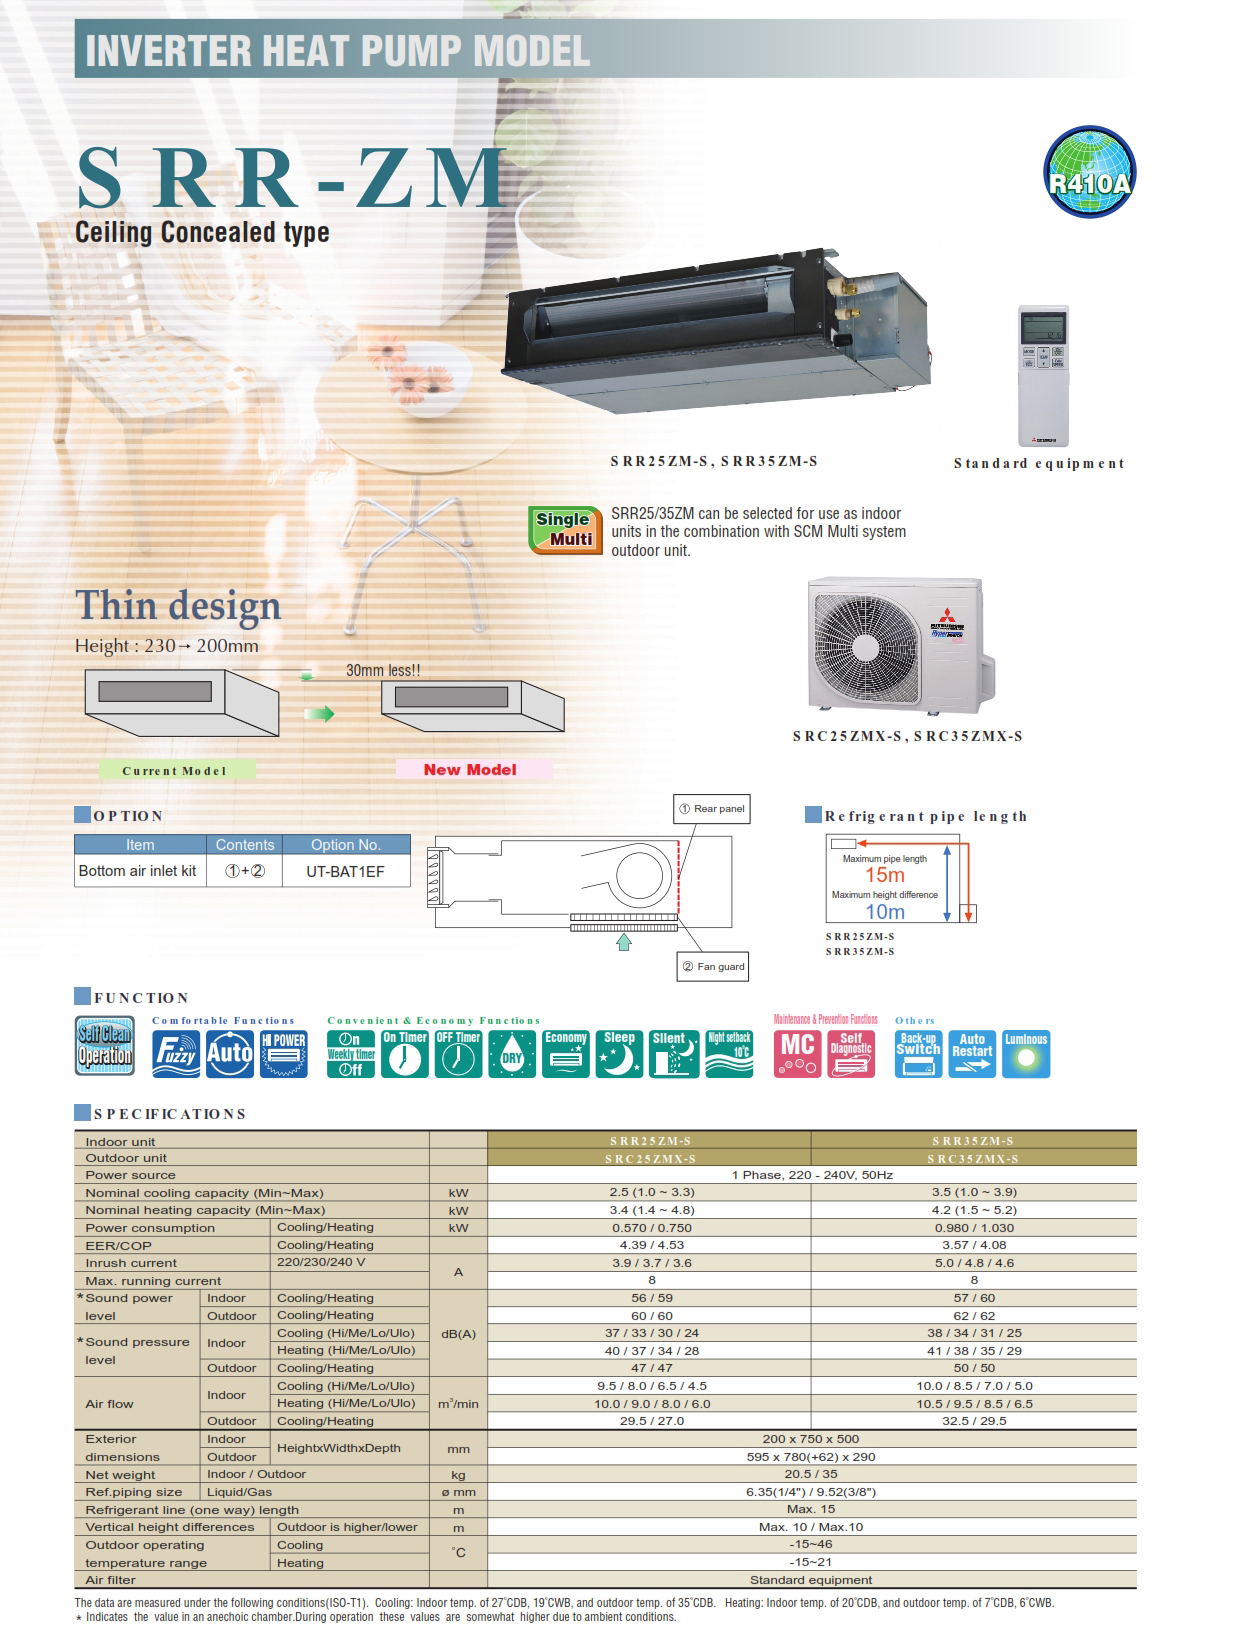 INVERTER HEAT PUMP MODEL SRR-ZM Ceiling Concealed type